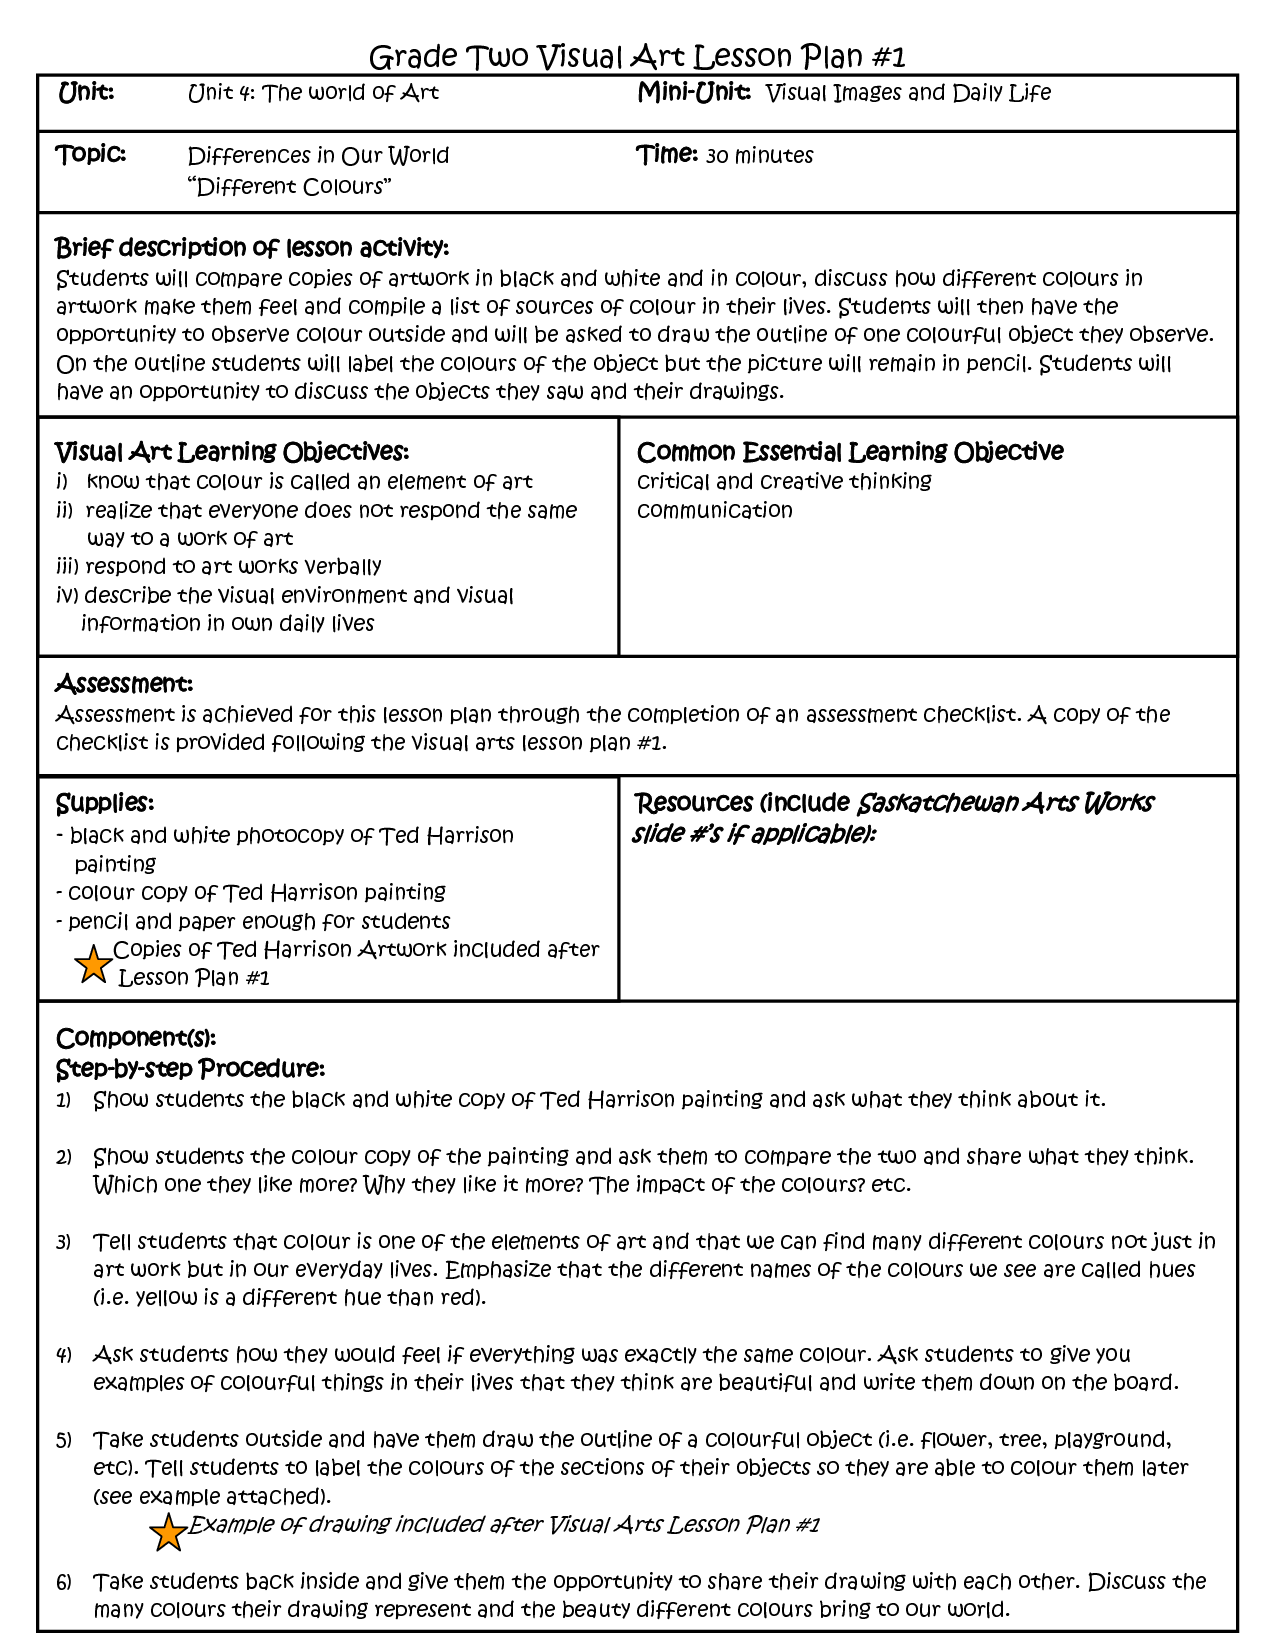 visual arts lesson plan template  u2026